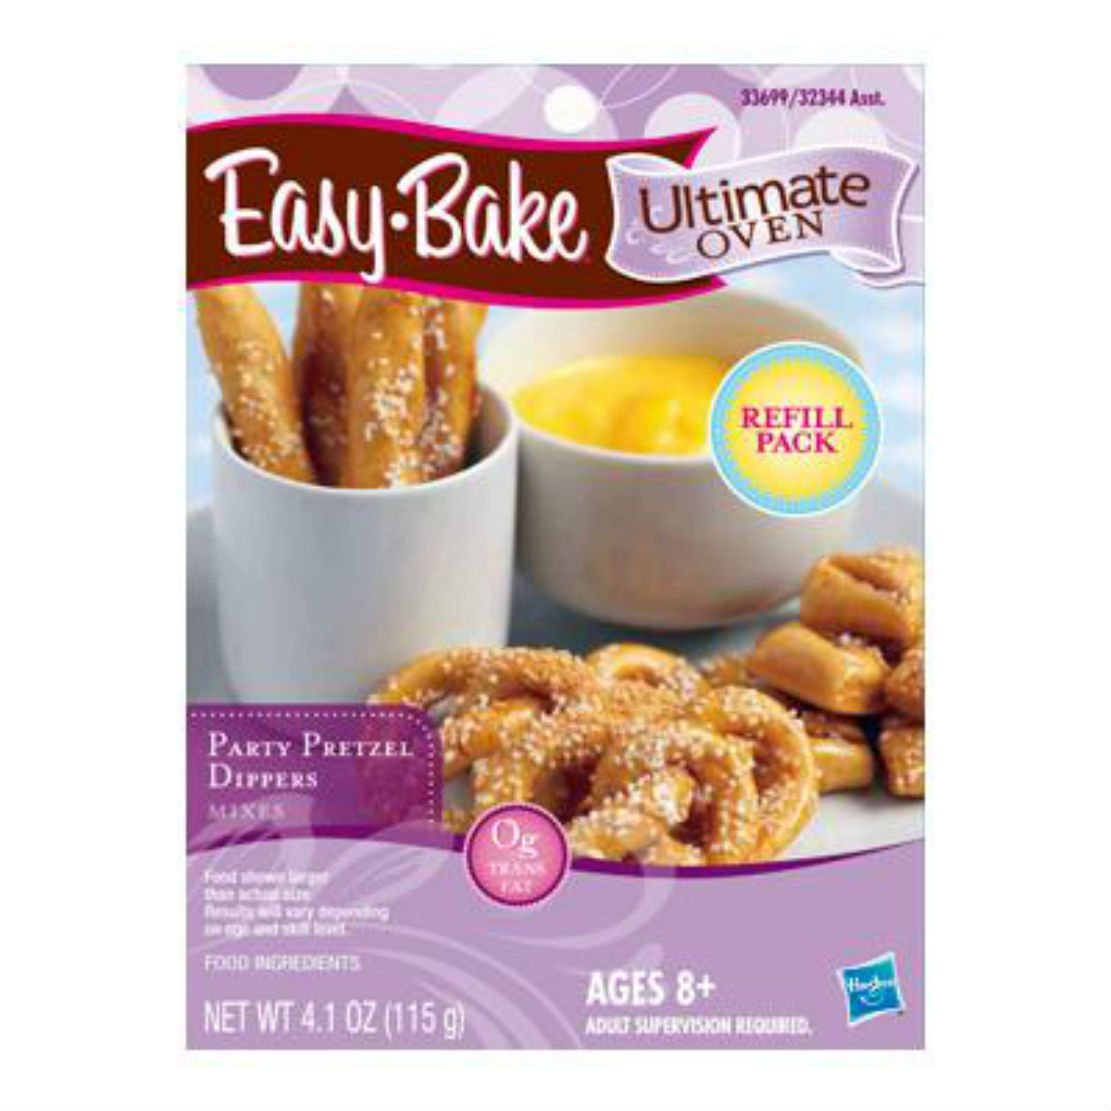 Easy-Bake Ultimate Oven - Party Pretzel Dippers Mix